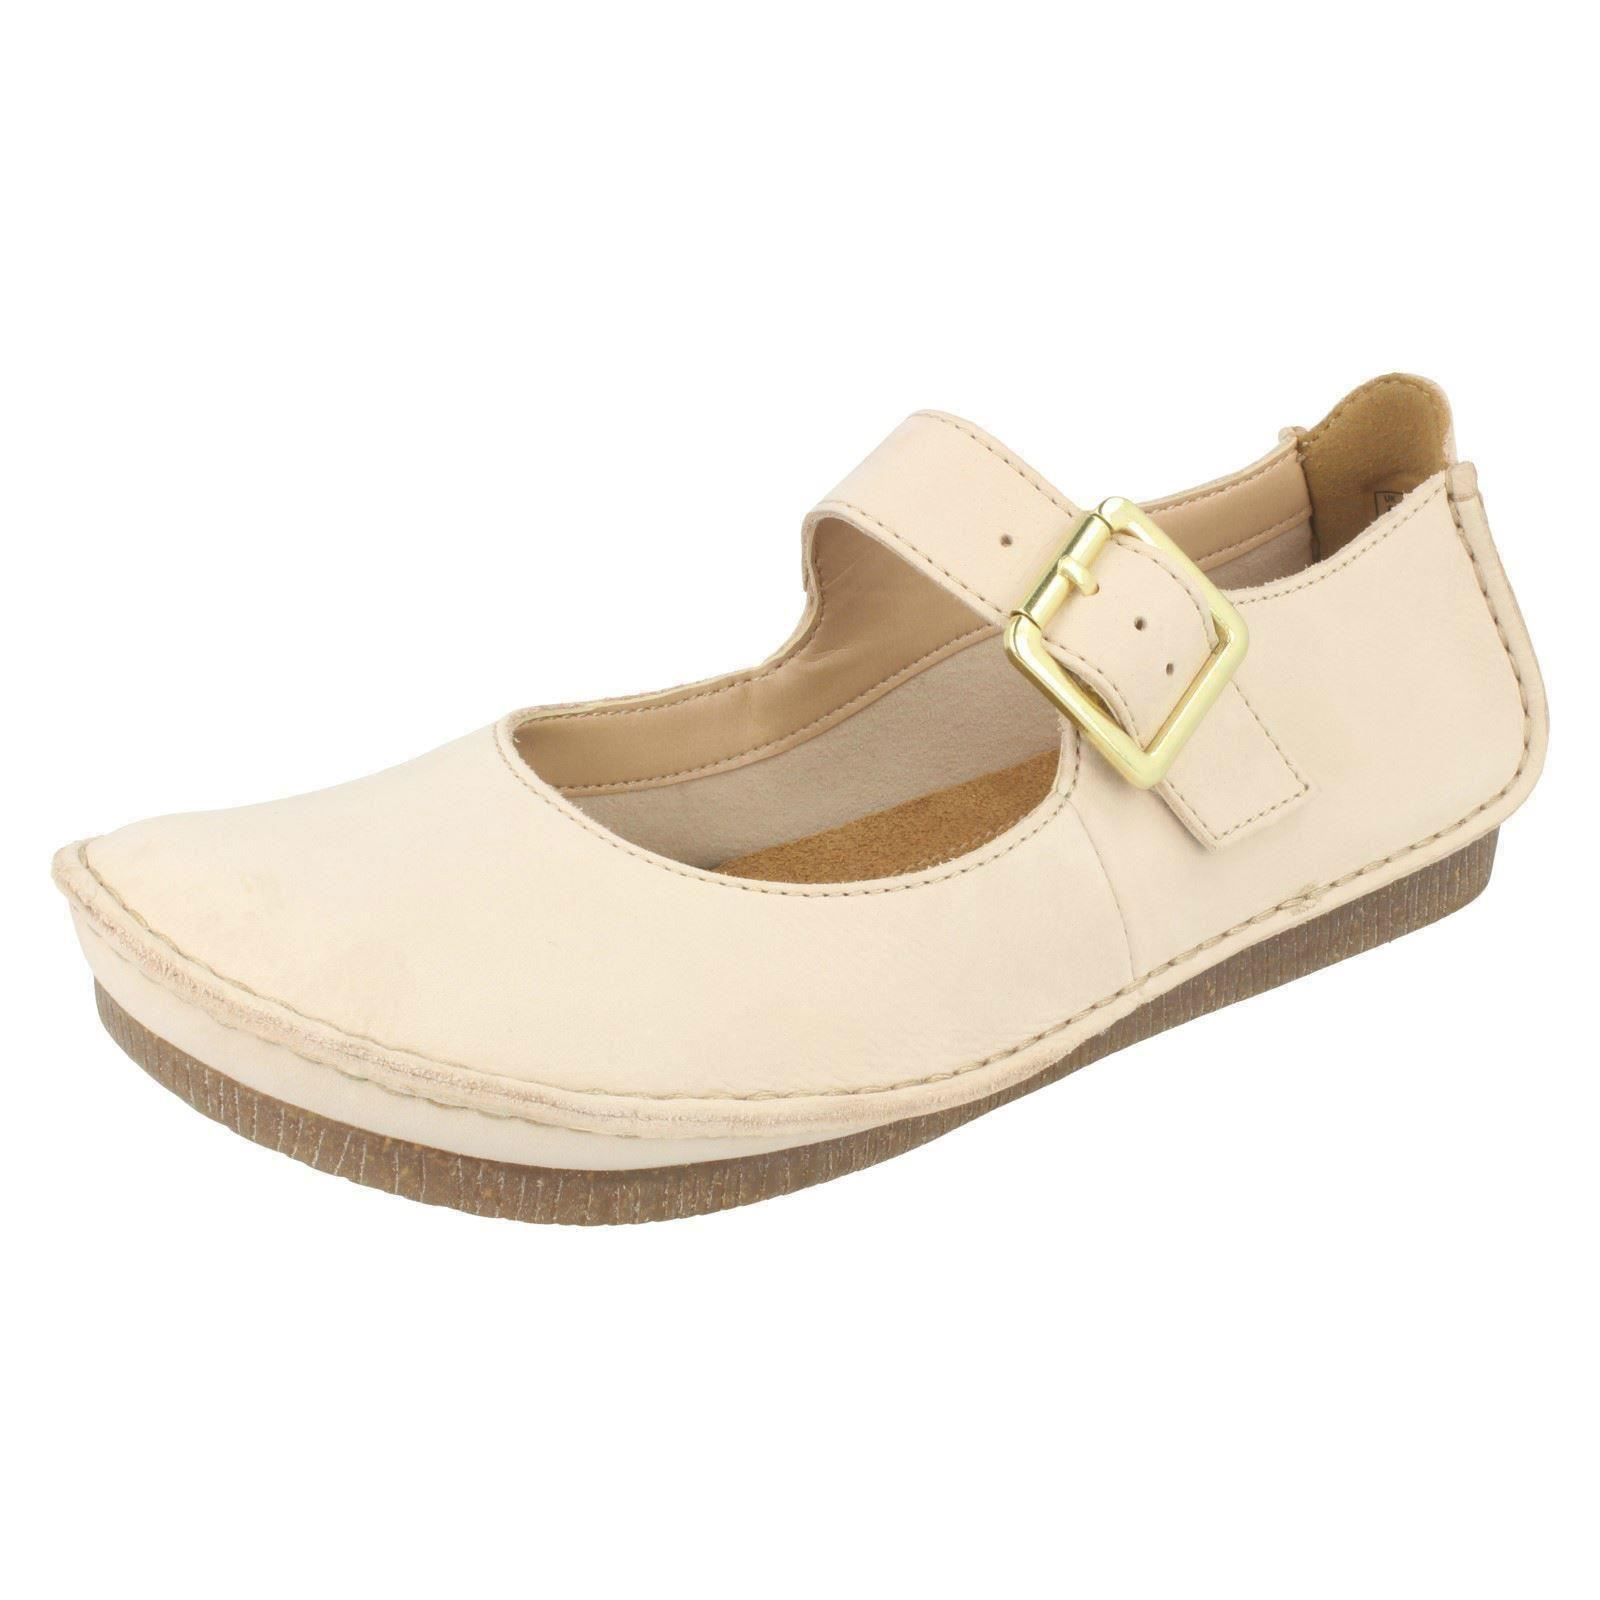 Clarks Women S Flat Shoes With Buckle